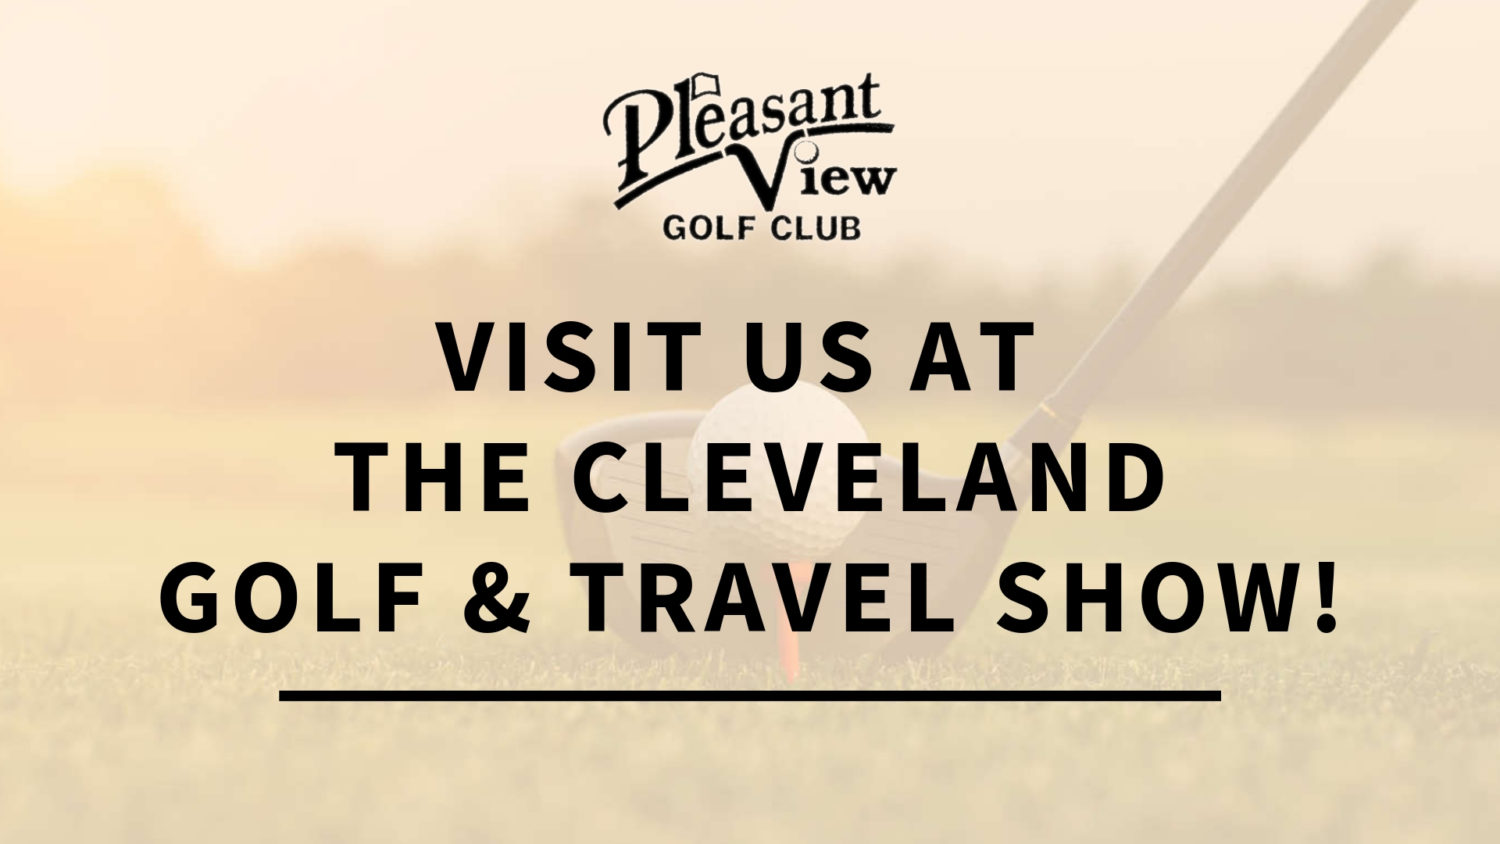 VISIT US AT THE CLEVELAND GOLF & TRAVEL SHOW!